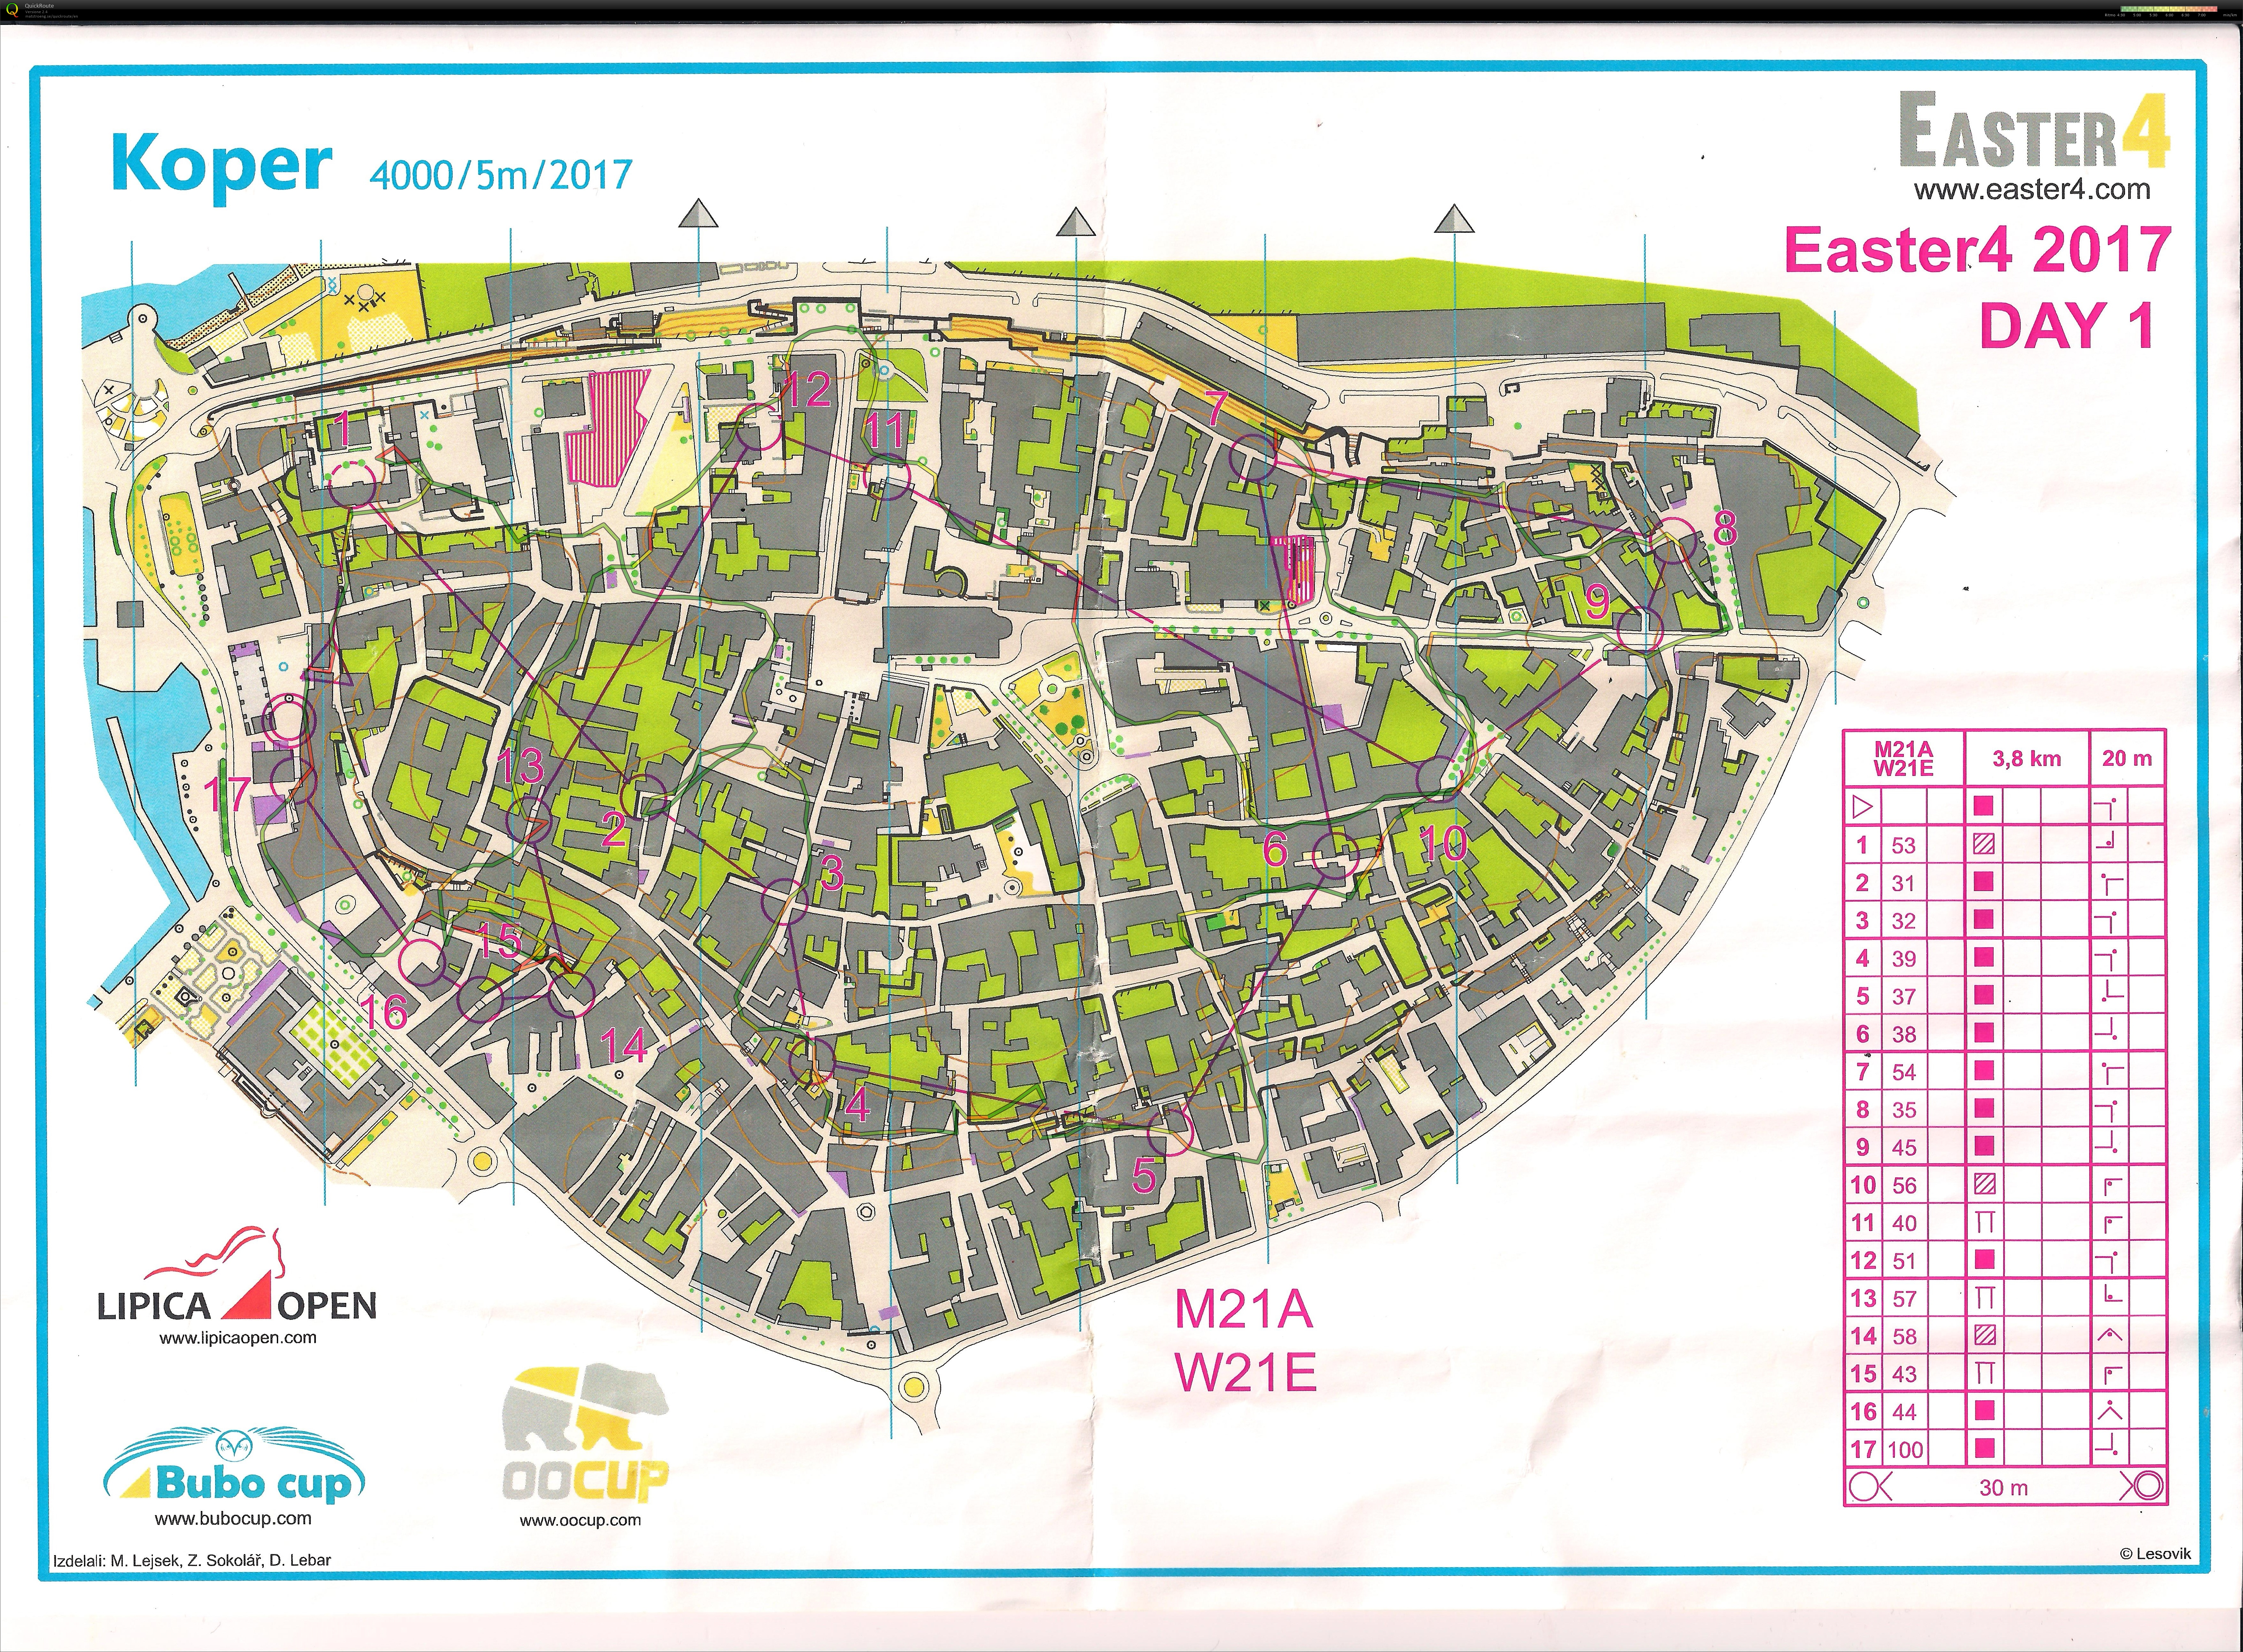 Easter4 Day 1 - Raduno FVG (2017-04-20)